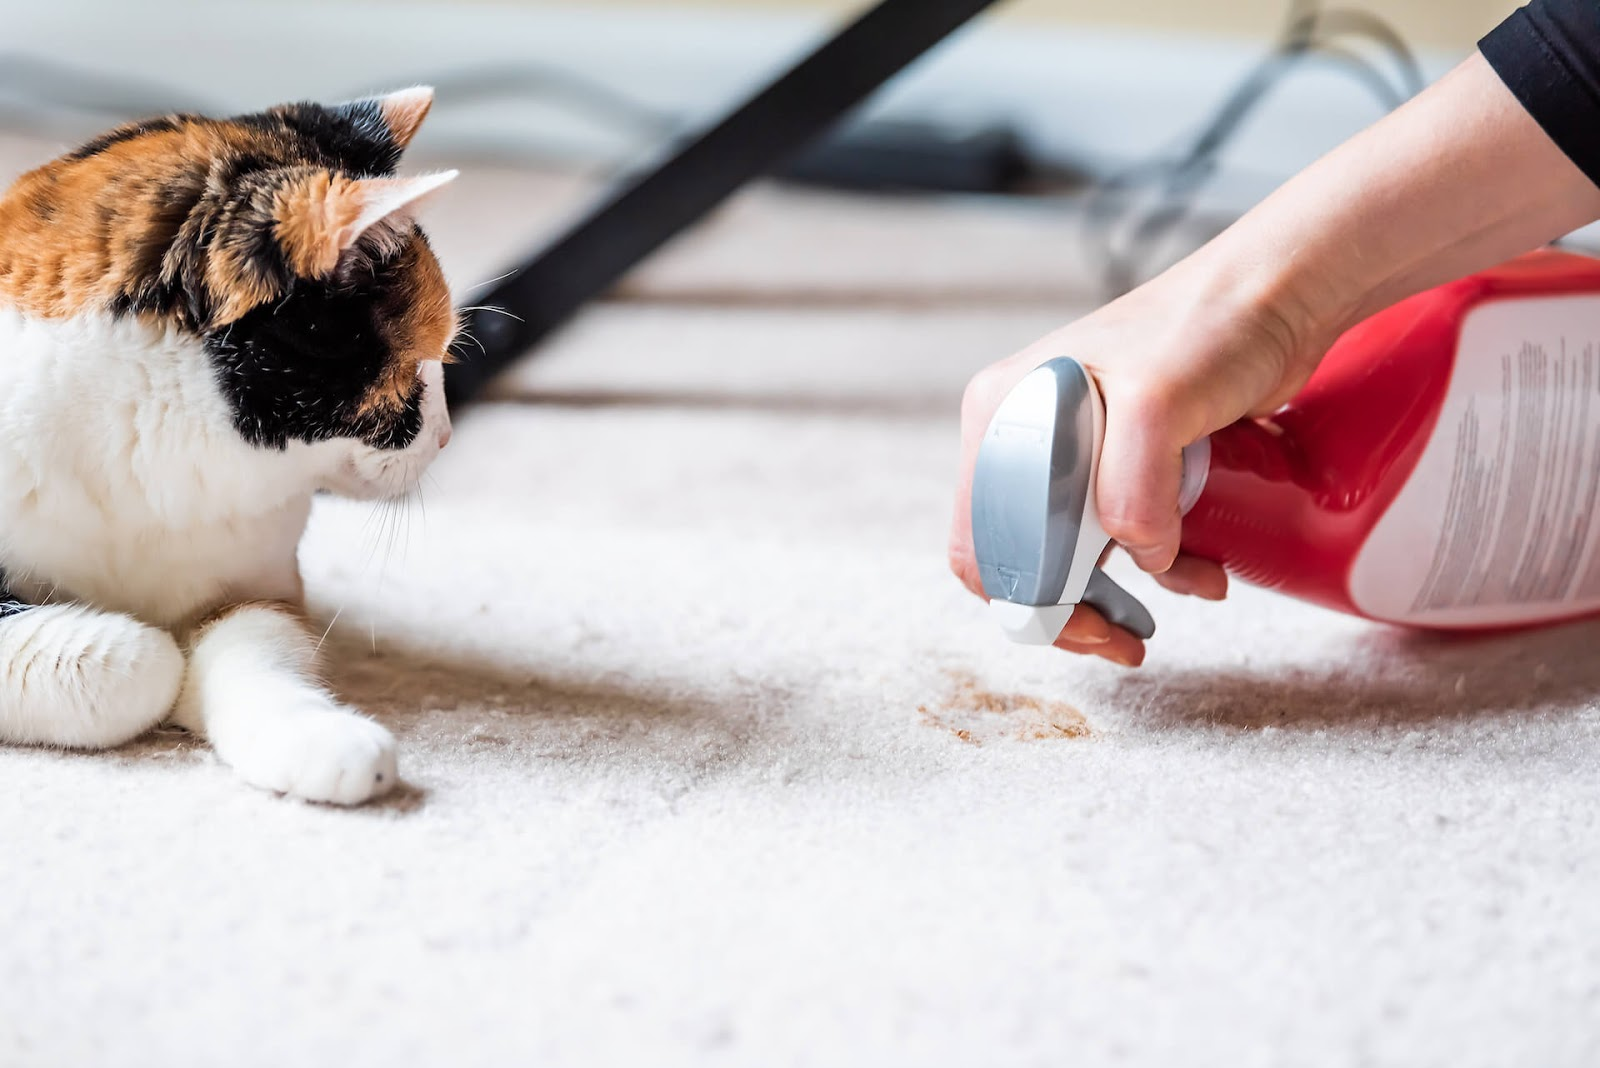 Woman using a product to clean up cat urine from the carpet